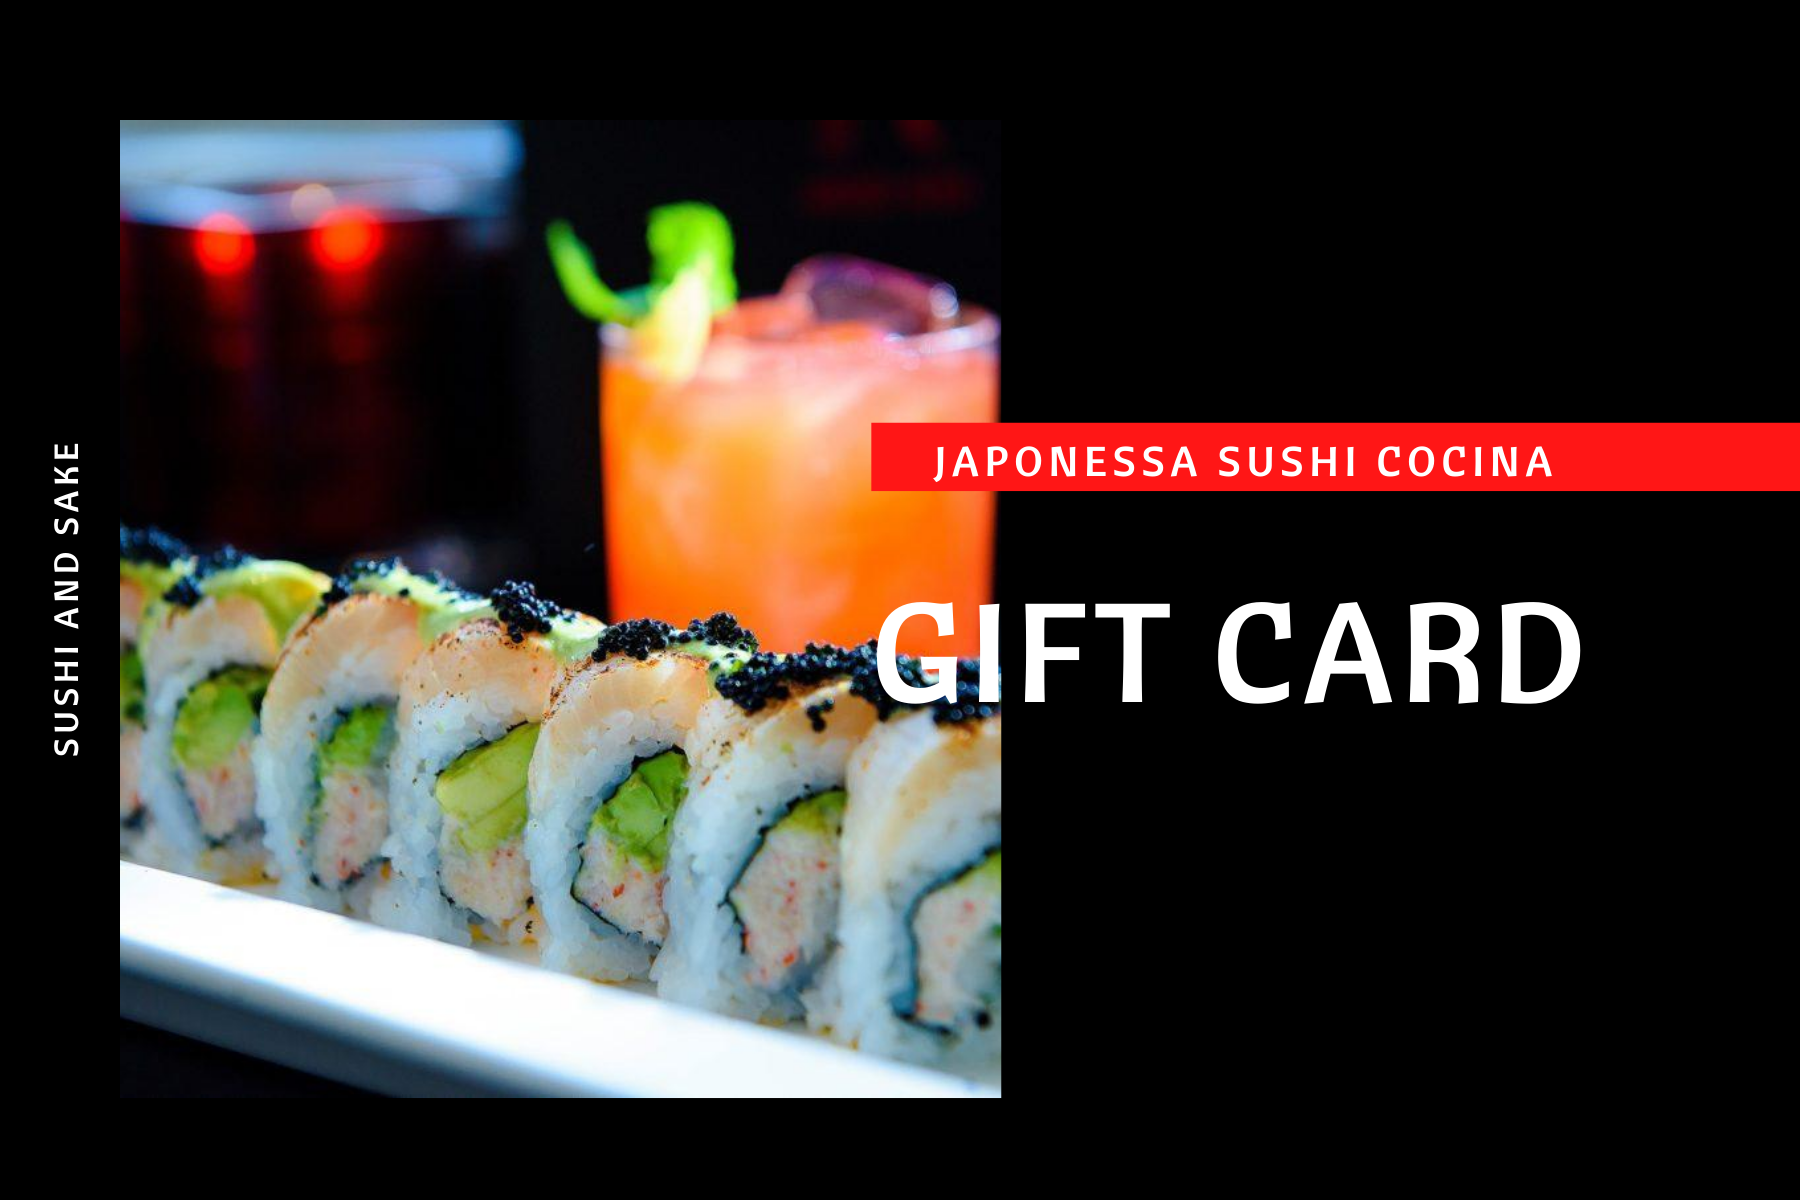 Picture of Japonessa Sushi gift card for purchase online or in store